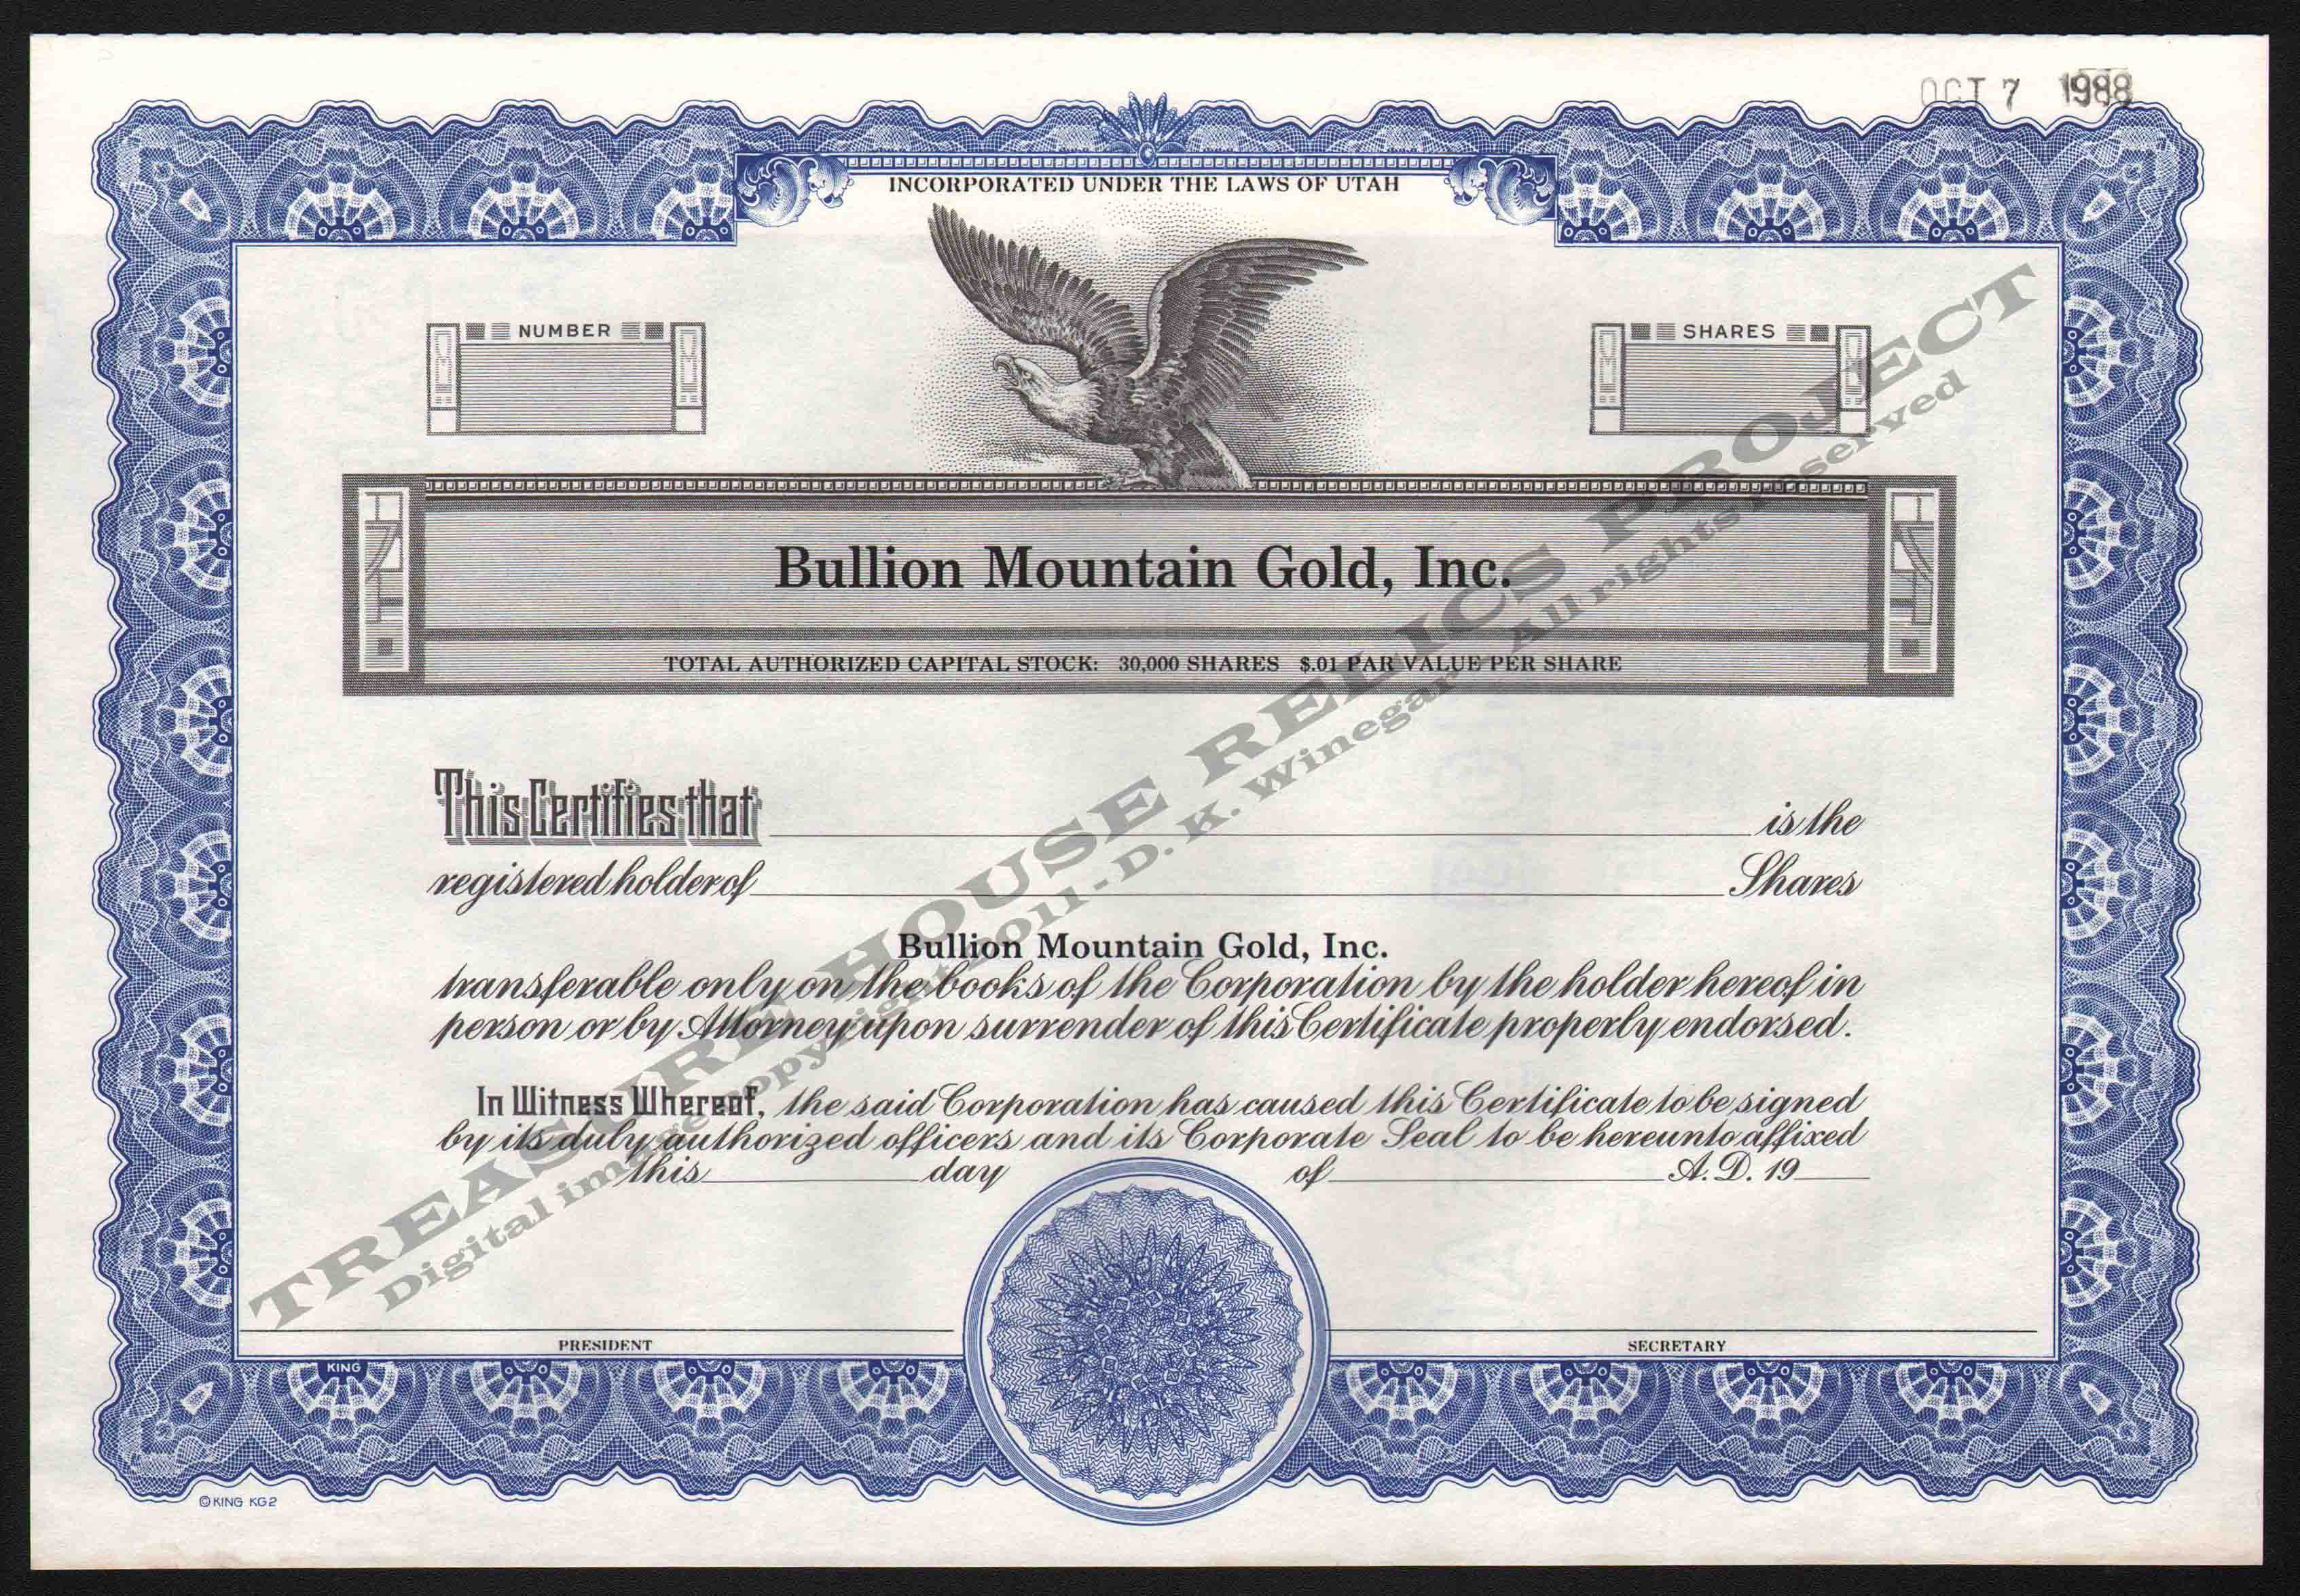 BULLION_MOUNTAIN_GOLD_INC_NNPS_300_emboss.jpg